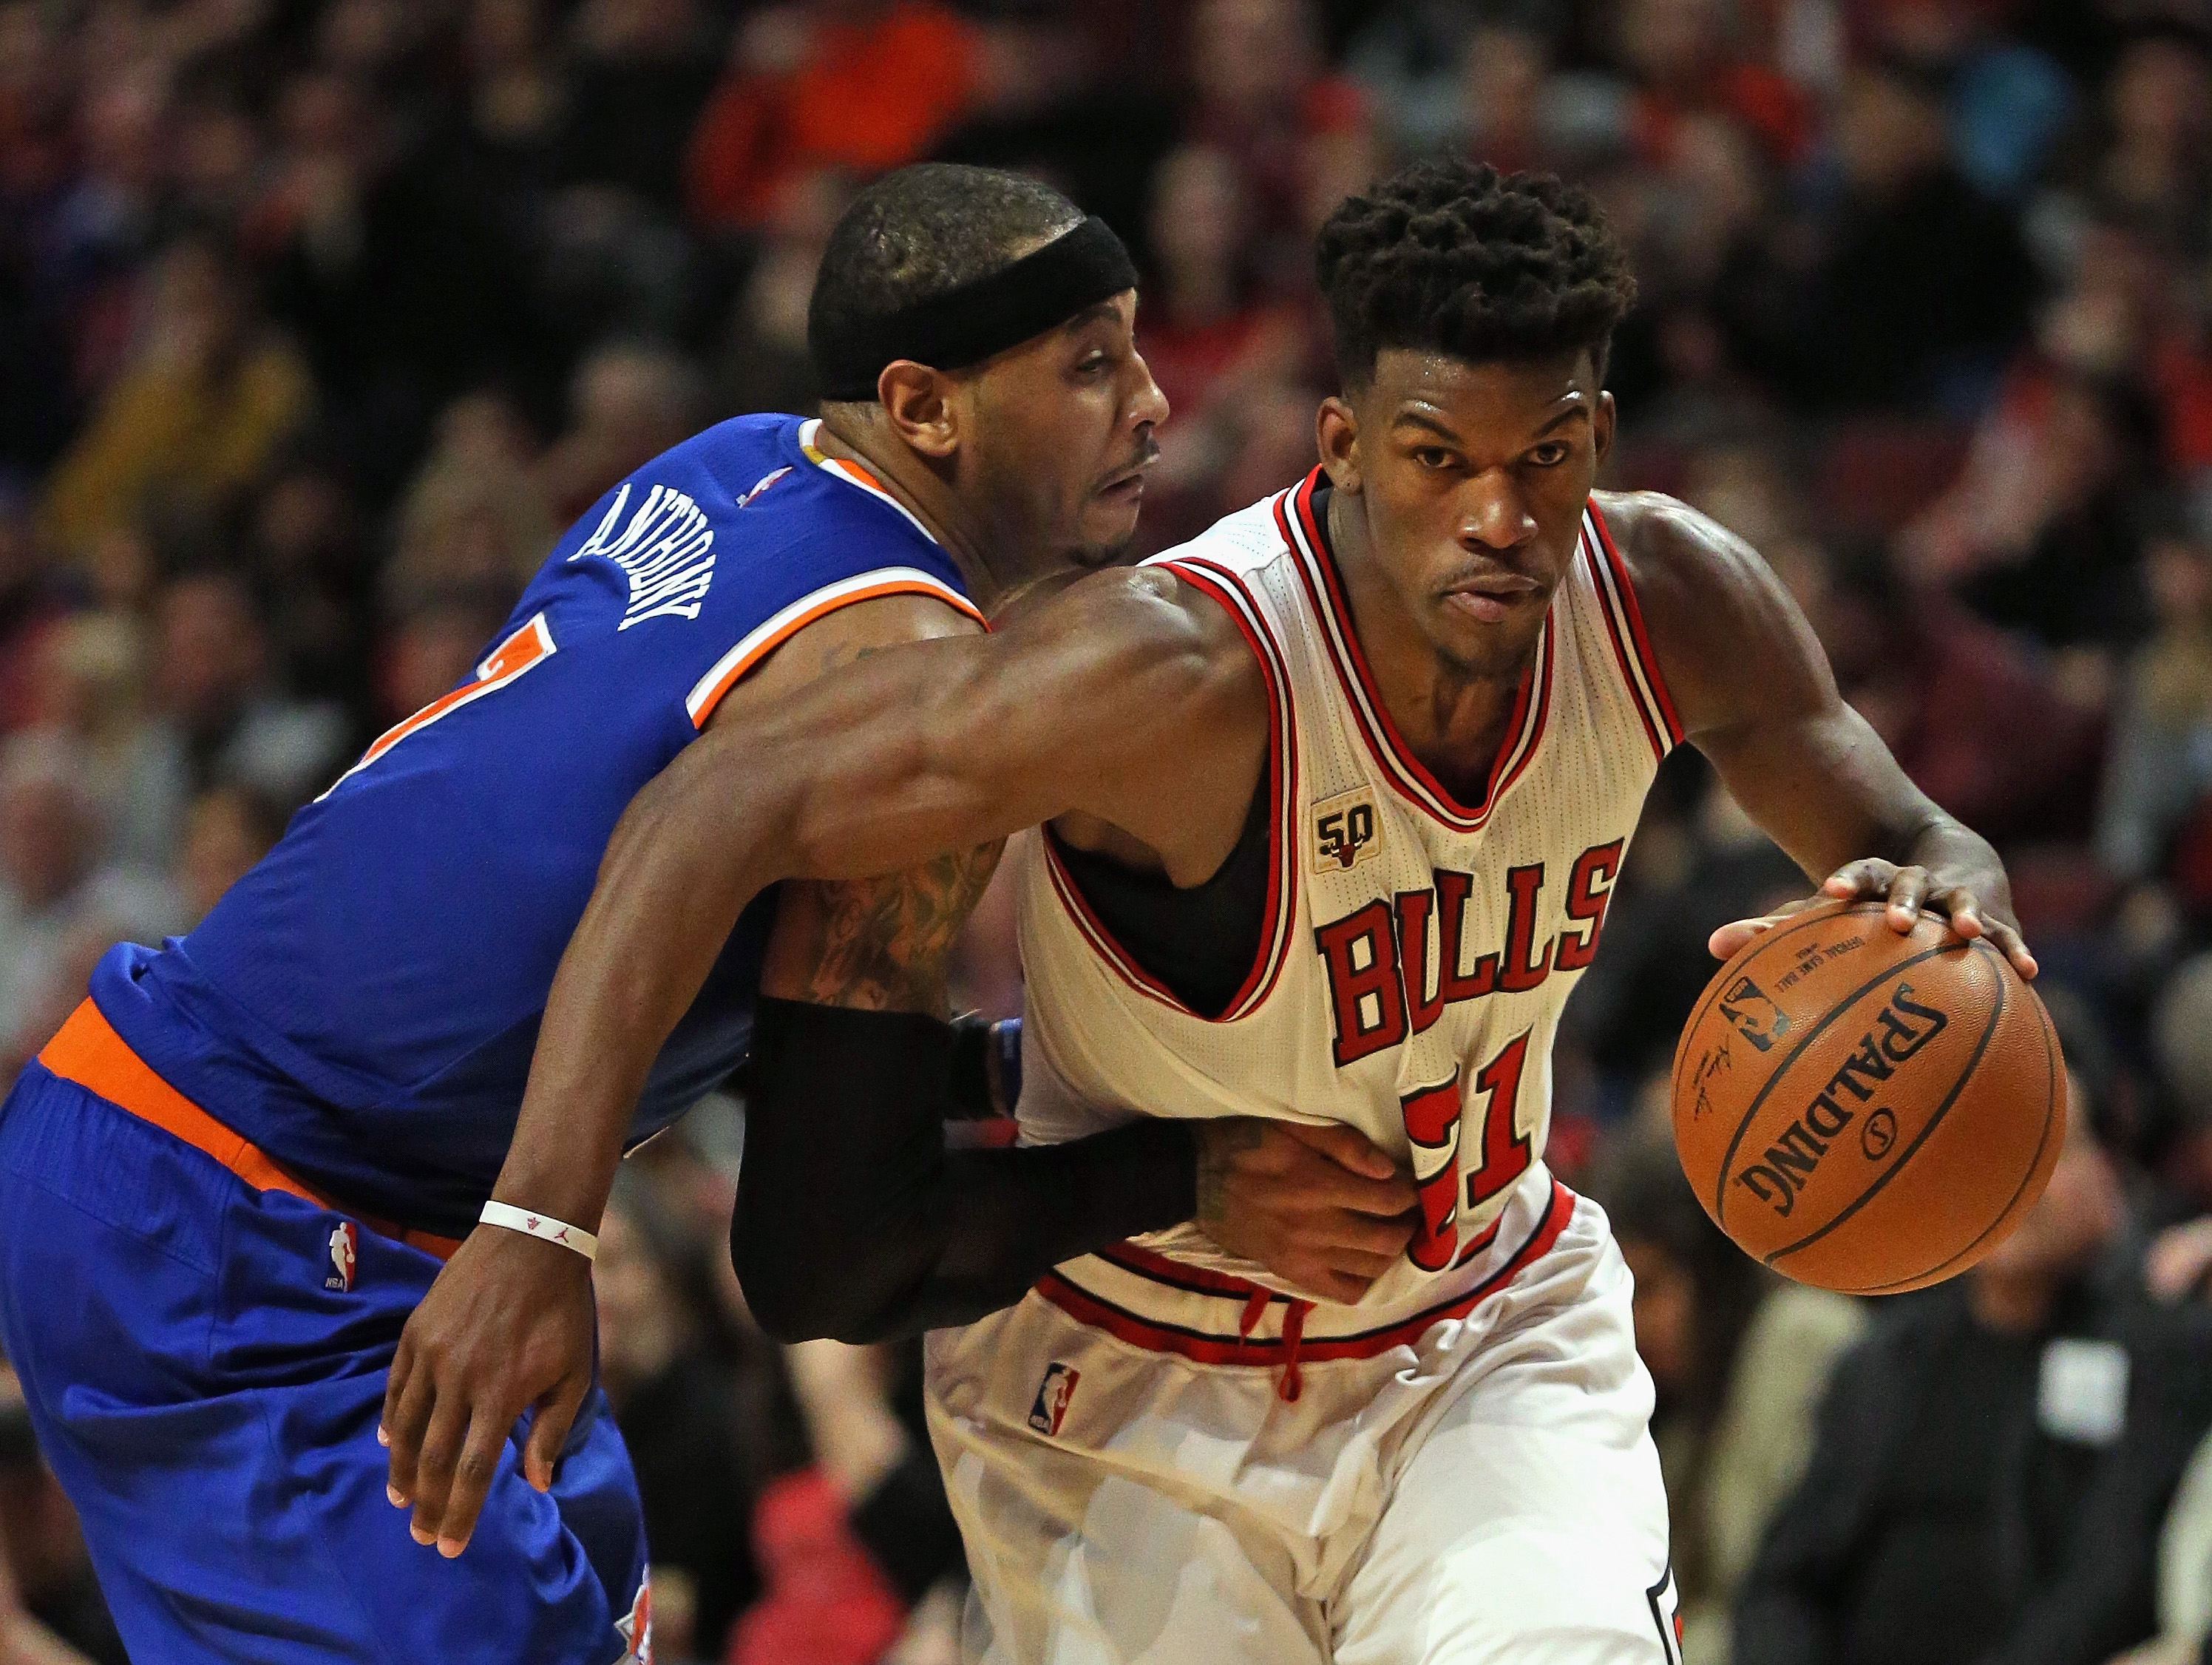 CHICAGO, IL - JANUARY 01:  Jimmy Butler #21 of the Chicago Bulls drives past Carmelo Anthony #7 of the New York Knicks at the United Center on January 1, 2016 in Chicago, Illinois. The Bulls defeated the Knicks 108-81. (Photo by Jonathan Daniel/Getty Imag